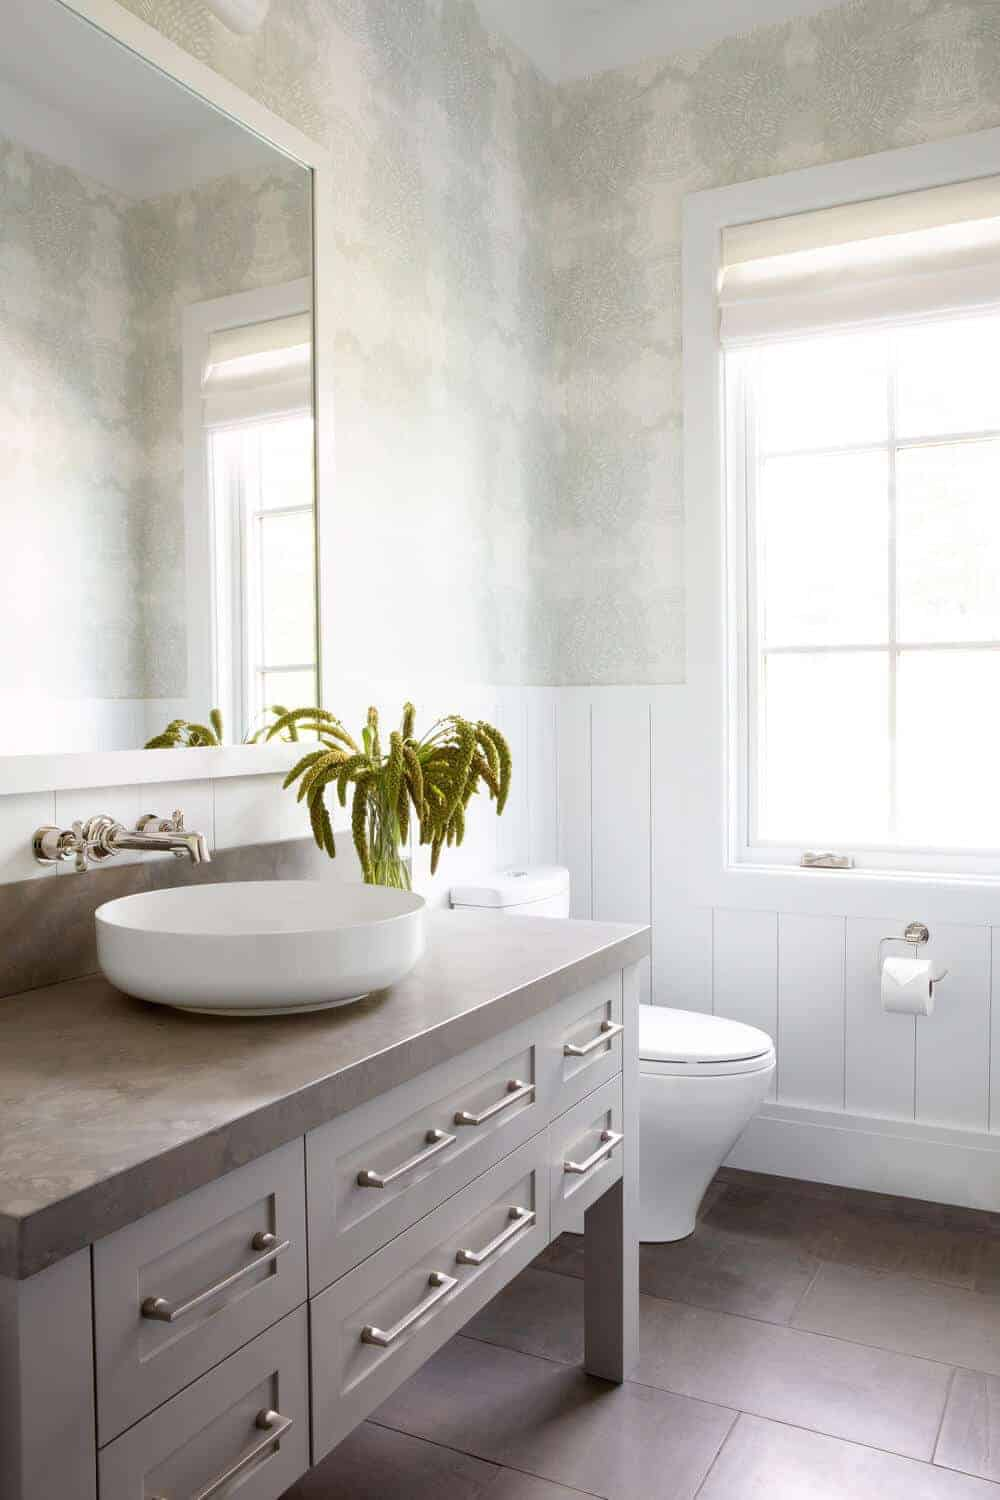 The light gray upper walls are a good match for the gray countertop and the flooring tiles of this bathroom. These are all brightened by the white wooden wainscoting that has a Farmhouse-style finish to it.